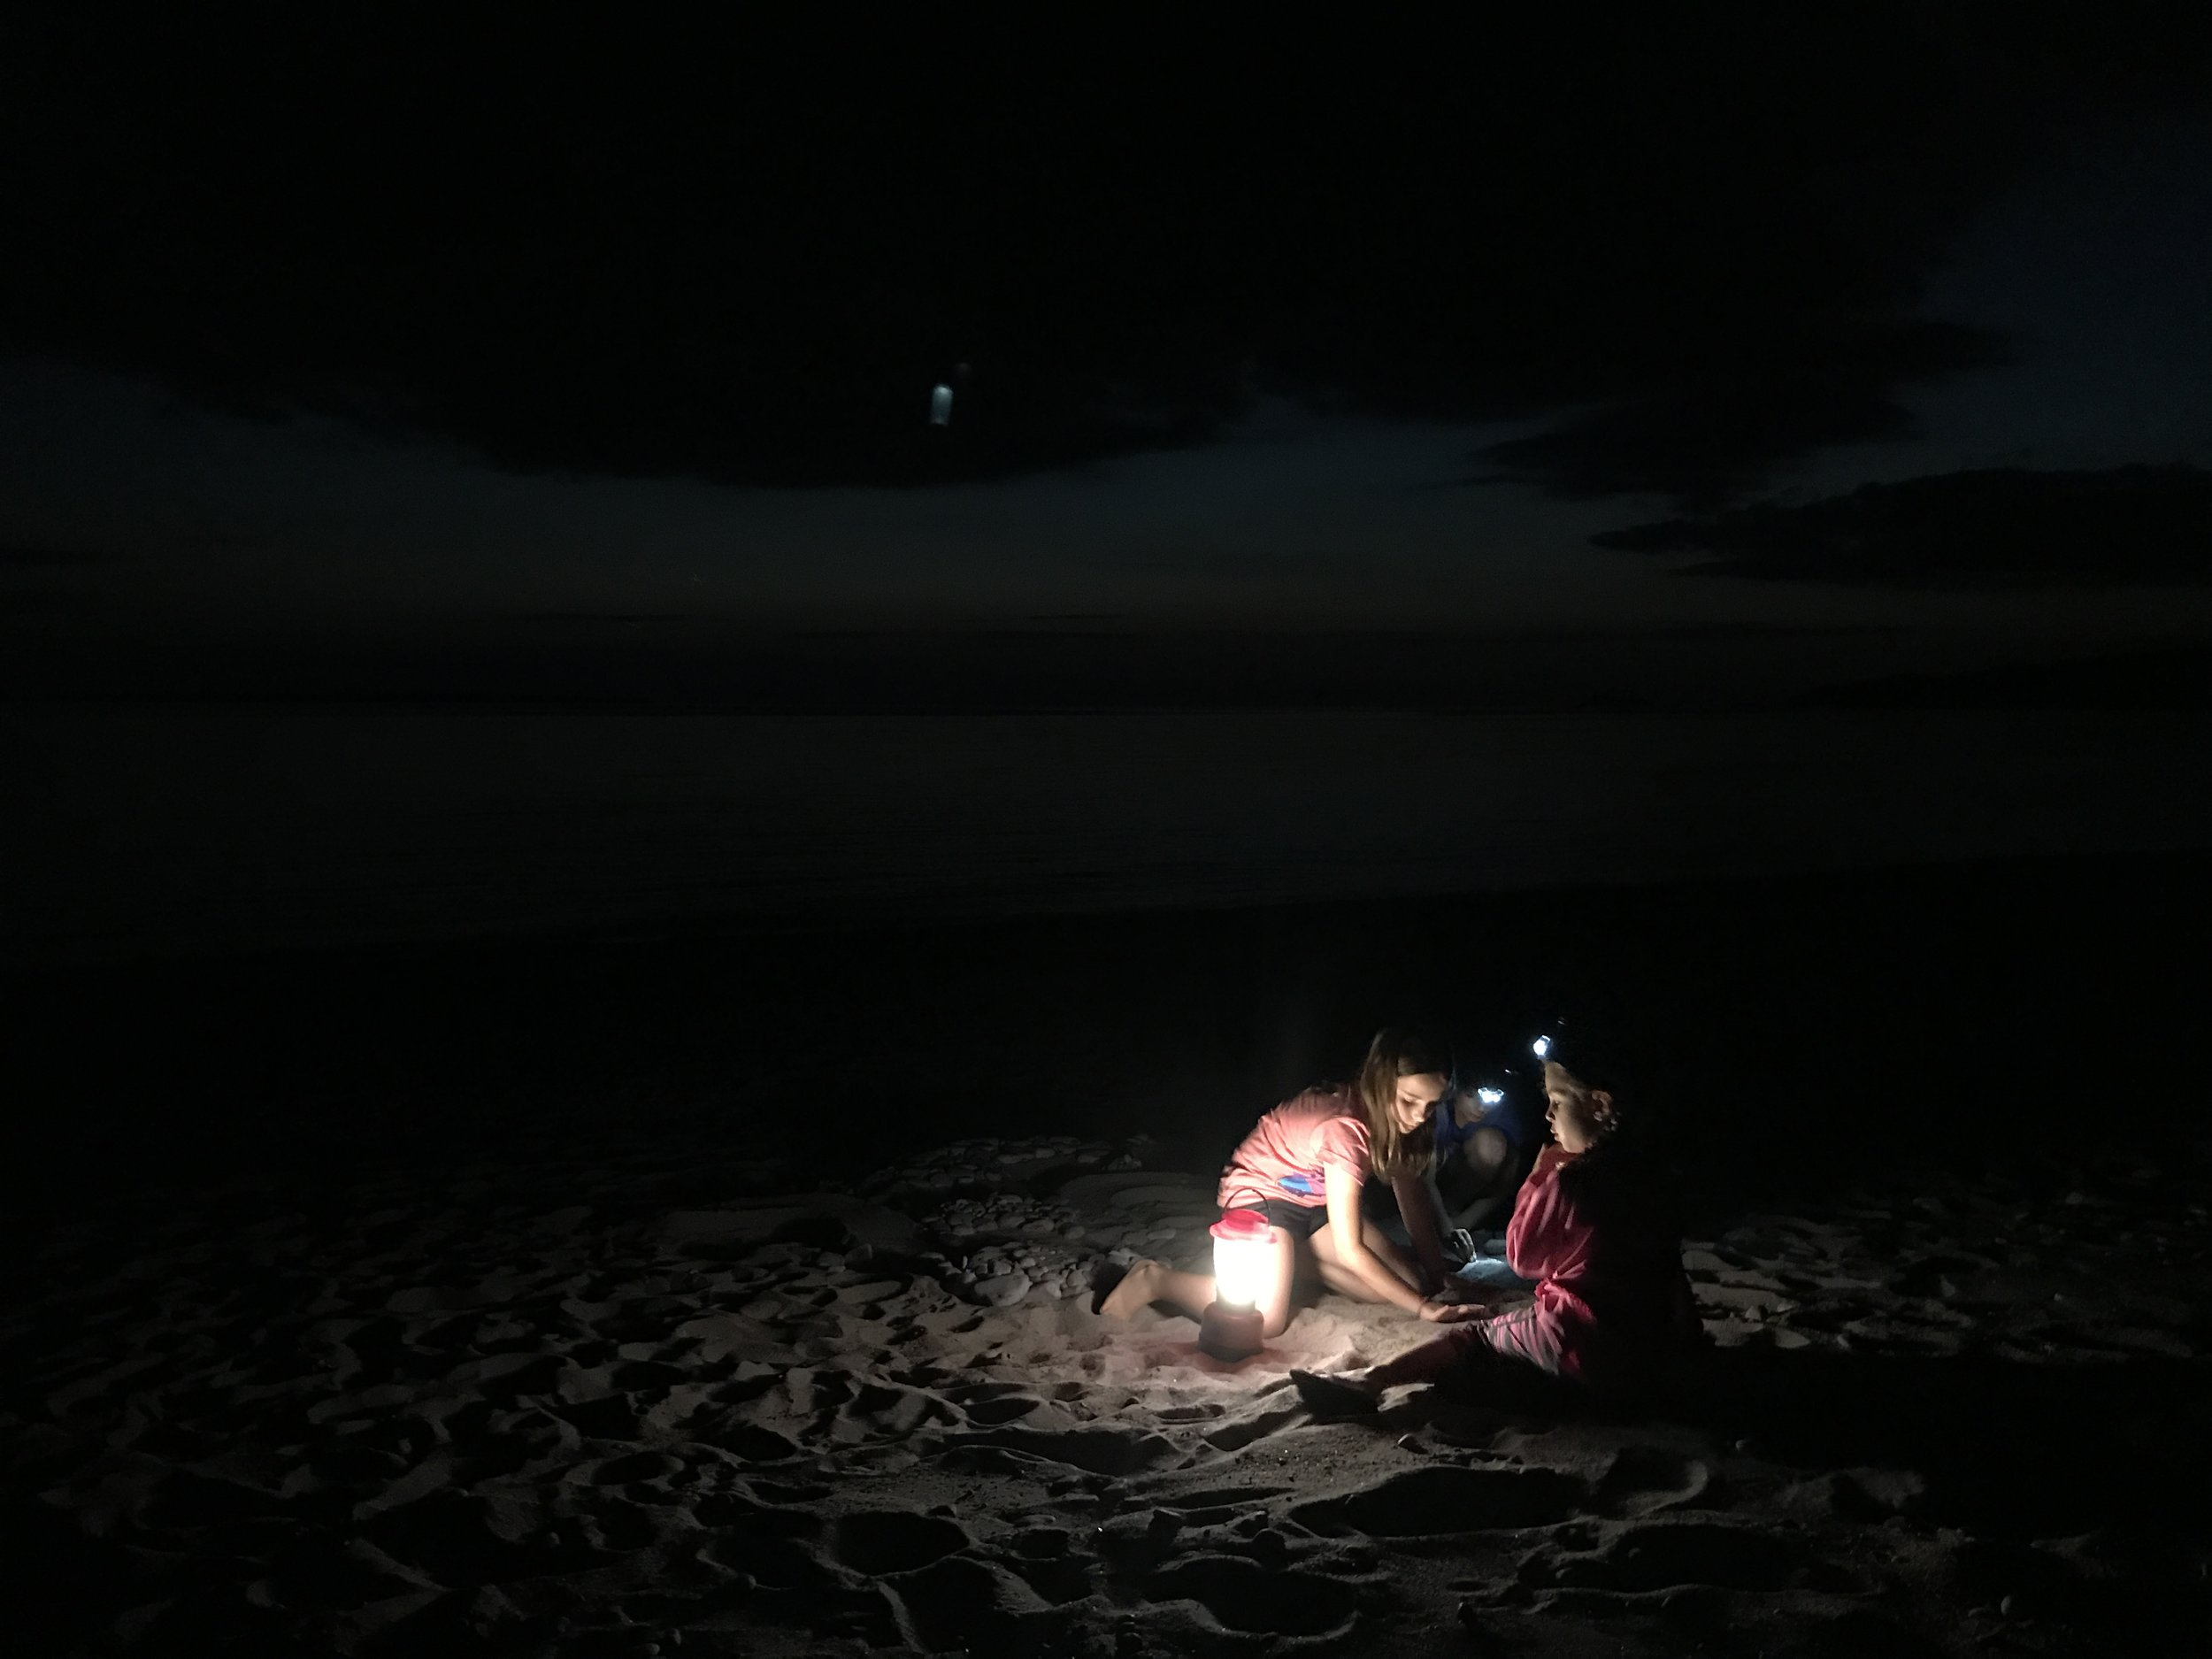 Playing in the sand with headlamps until the wee hours of the night.